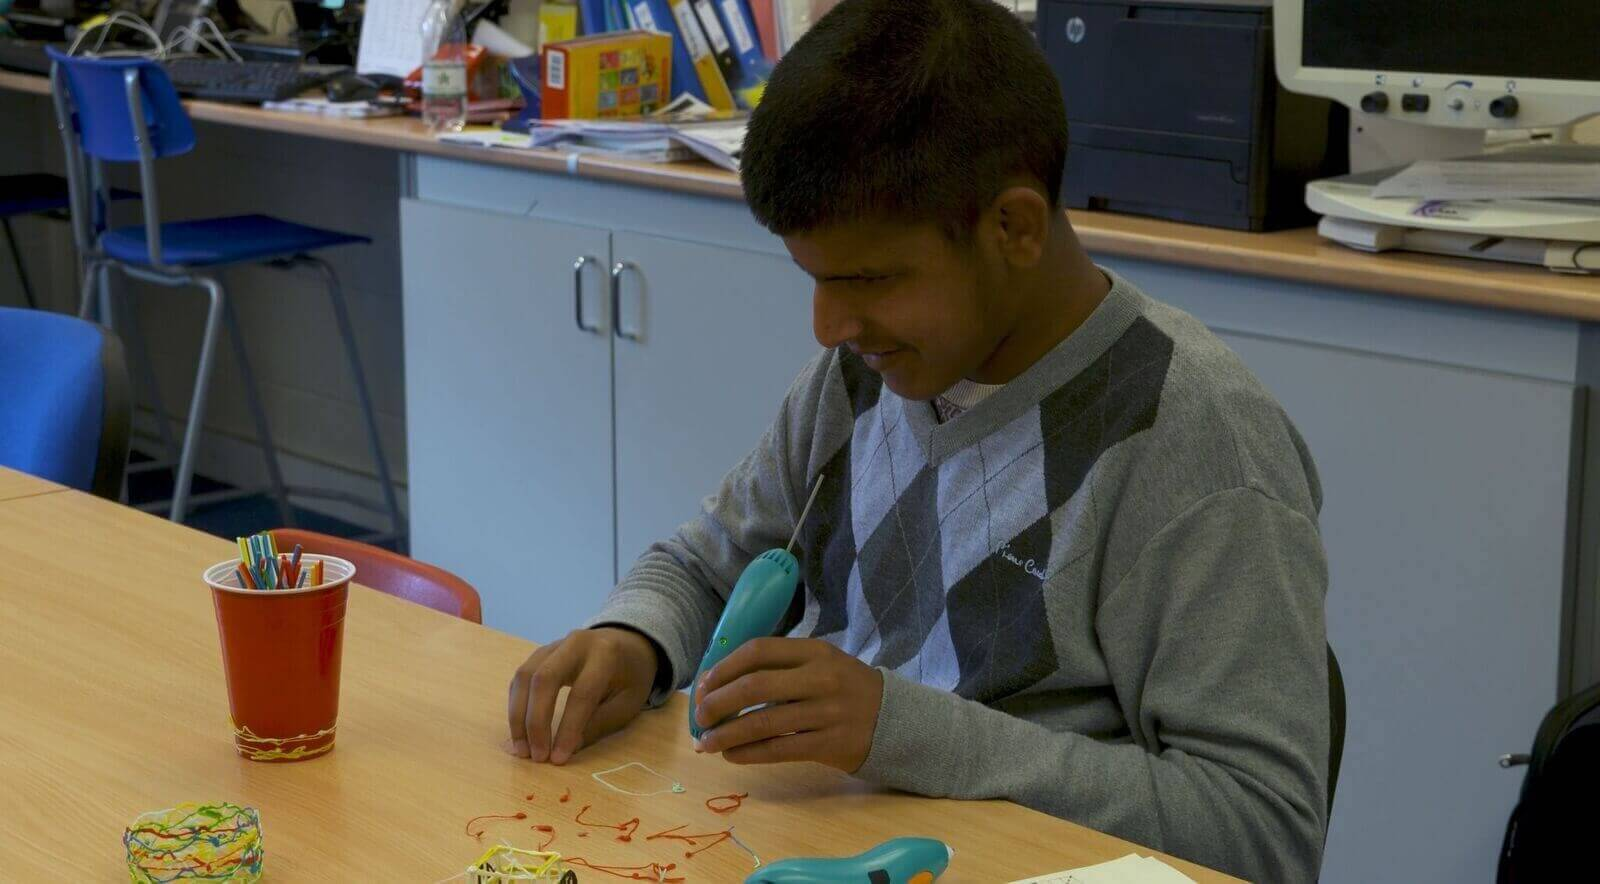 3Doodler Start 3D Pens are Officially Approved by the RNIB | All3DP